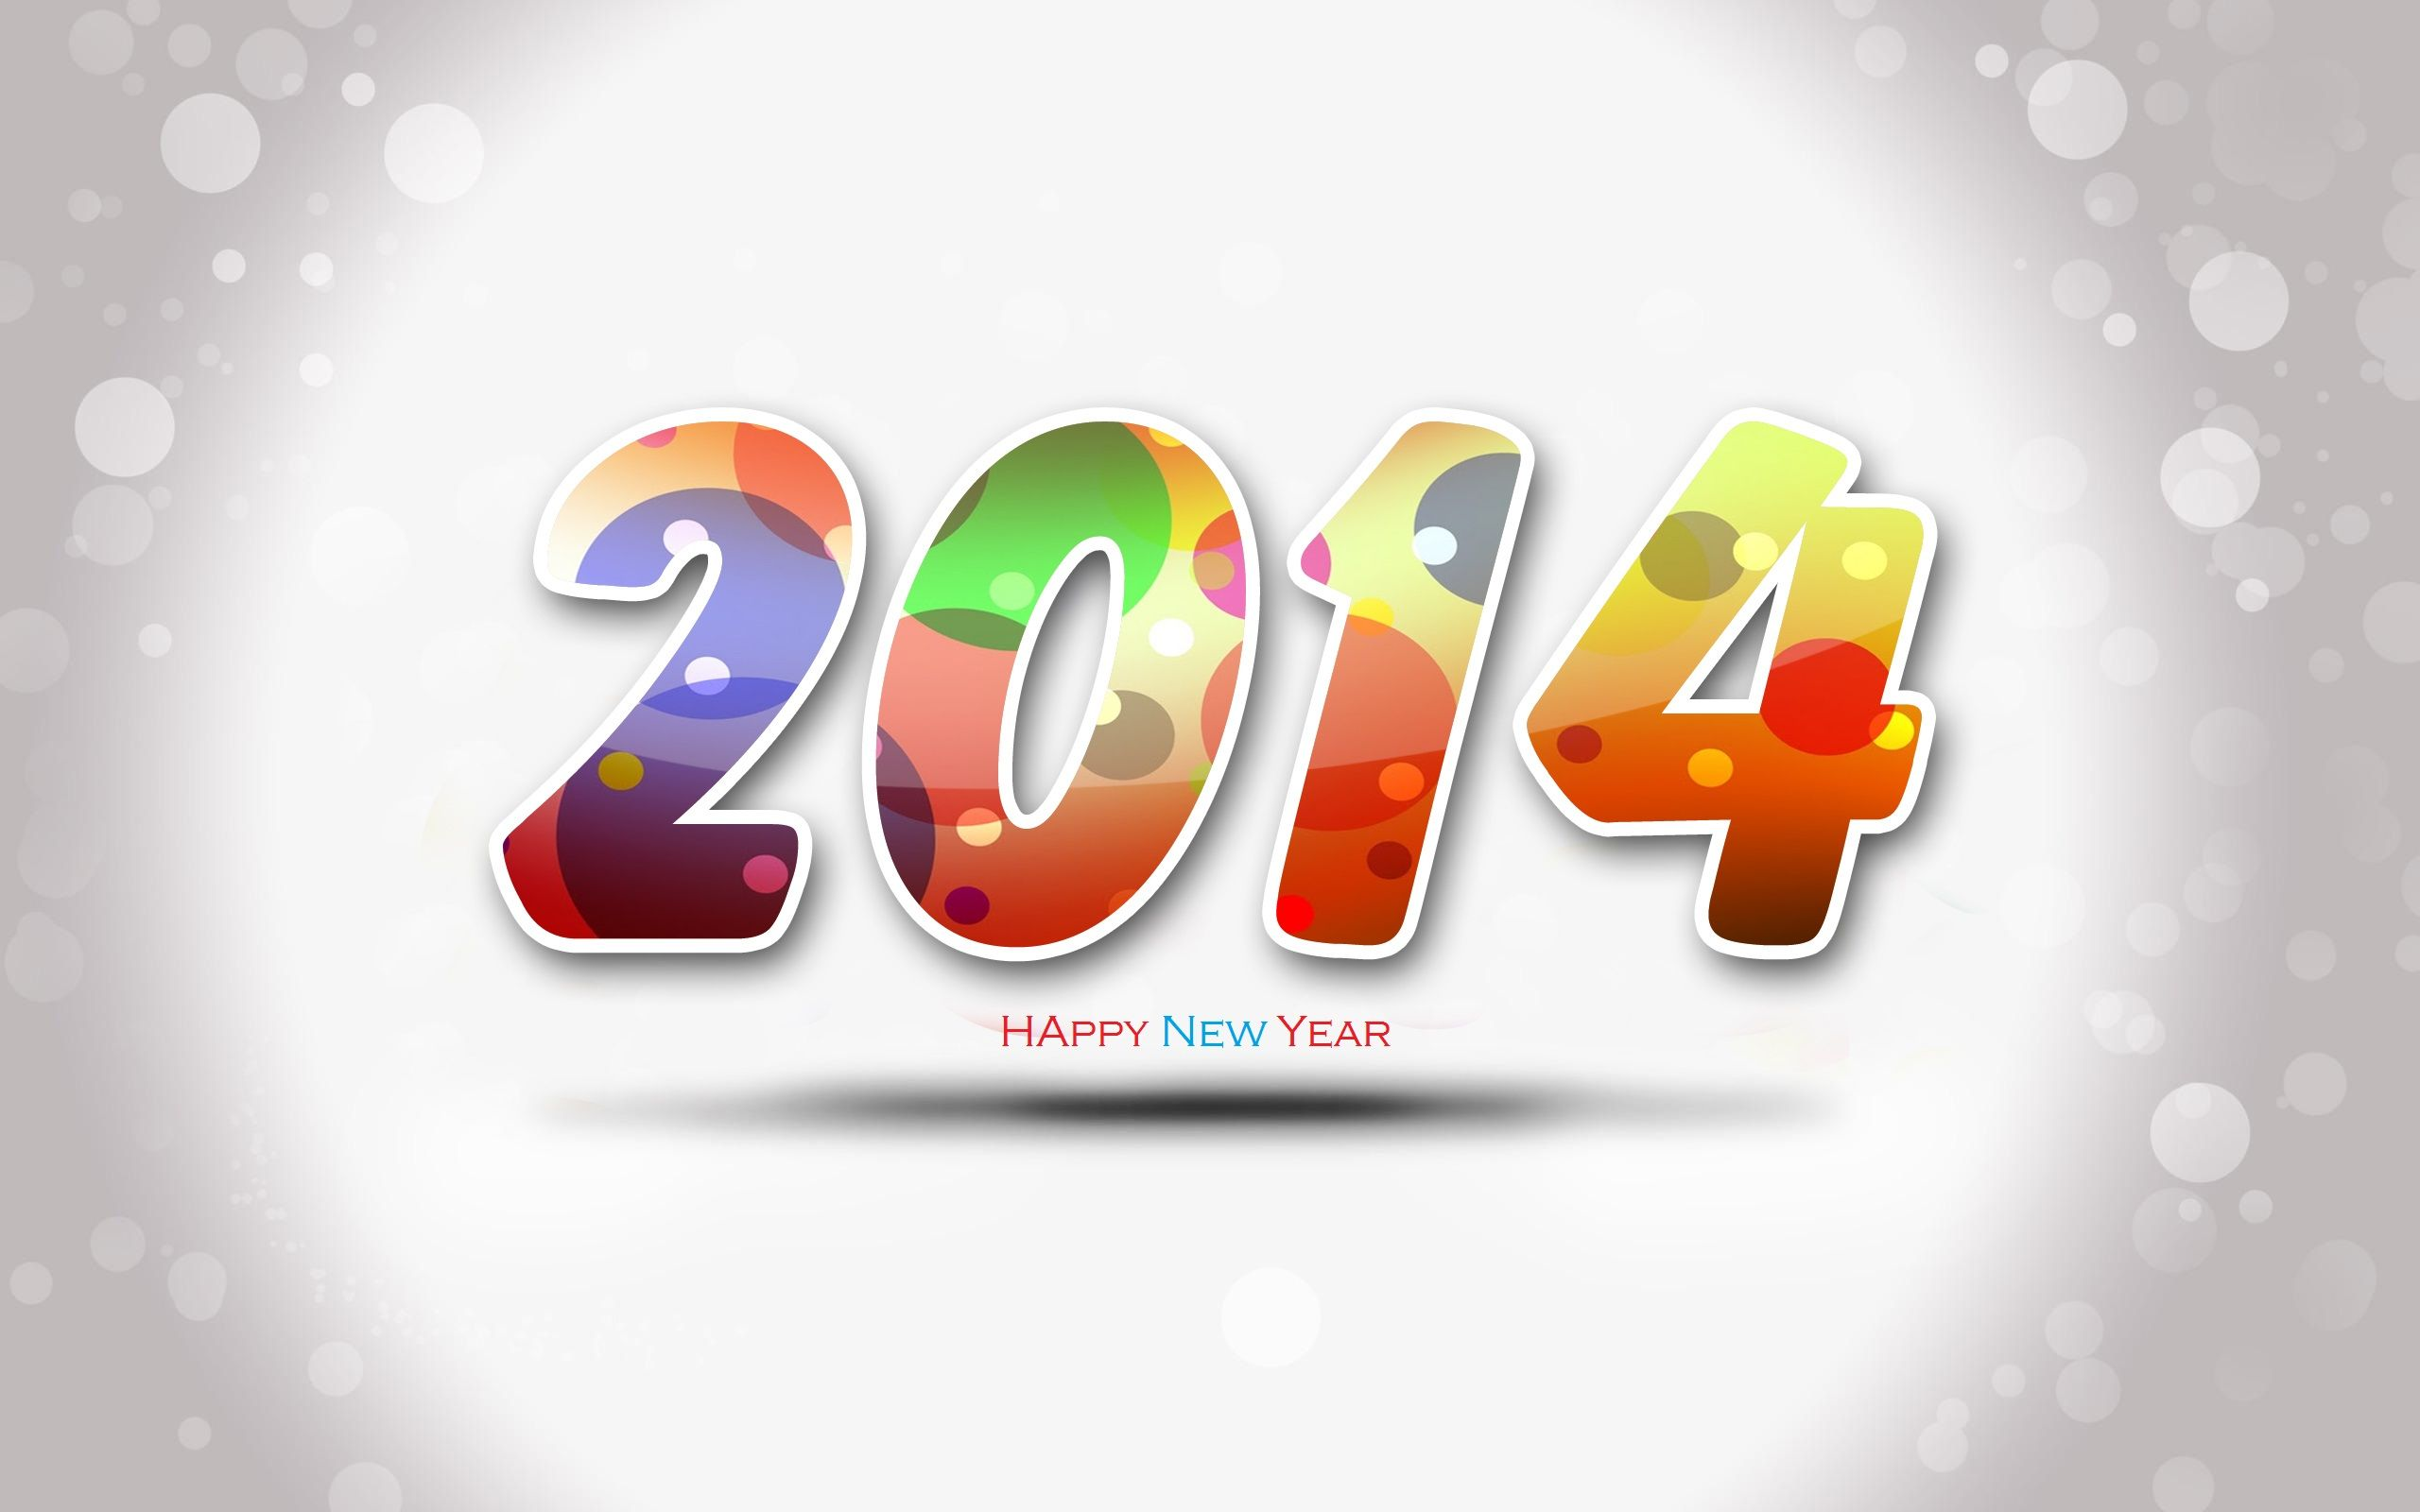 Happy new year 2014 hd wallpapers, new year pics, images